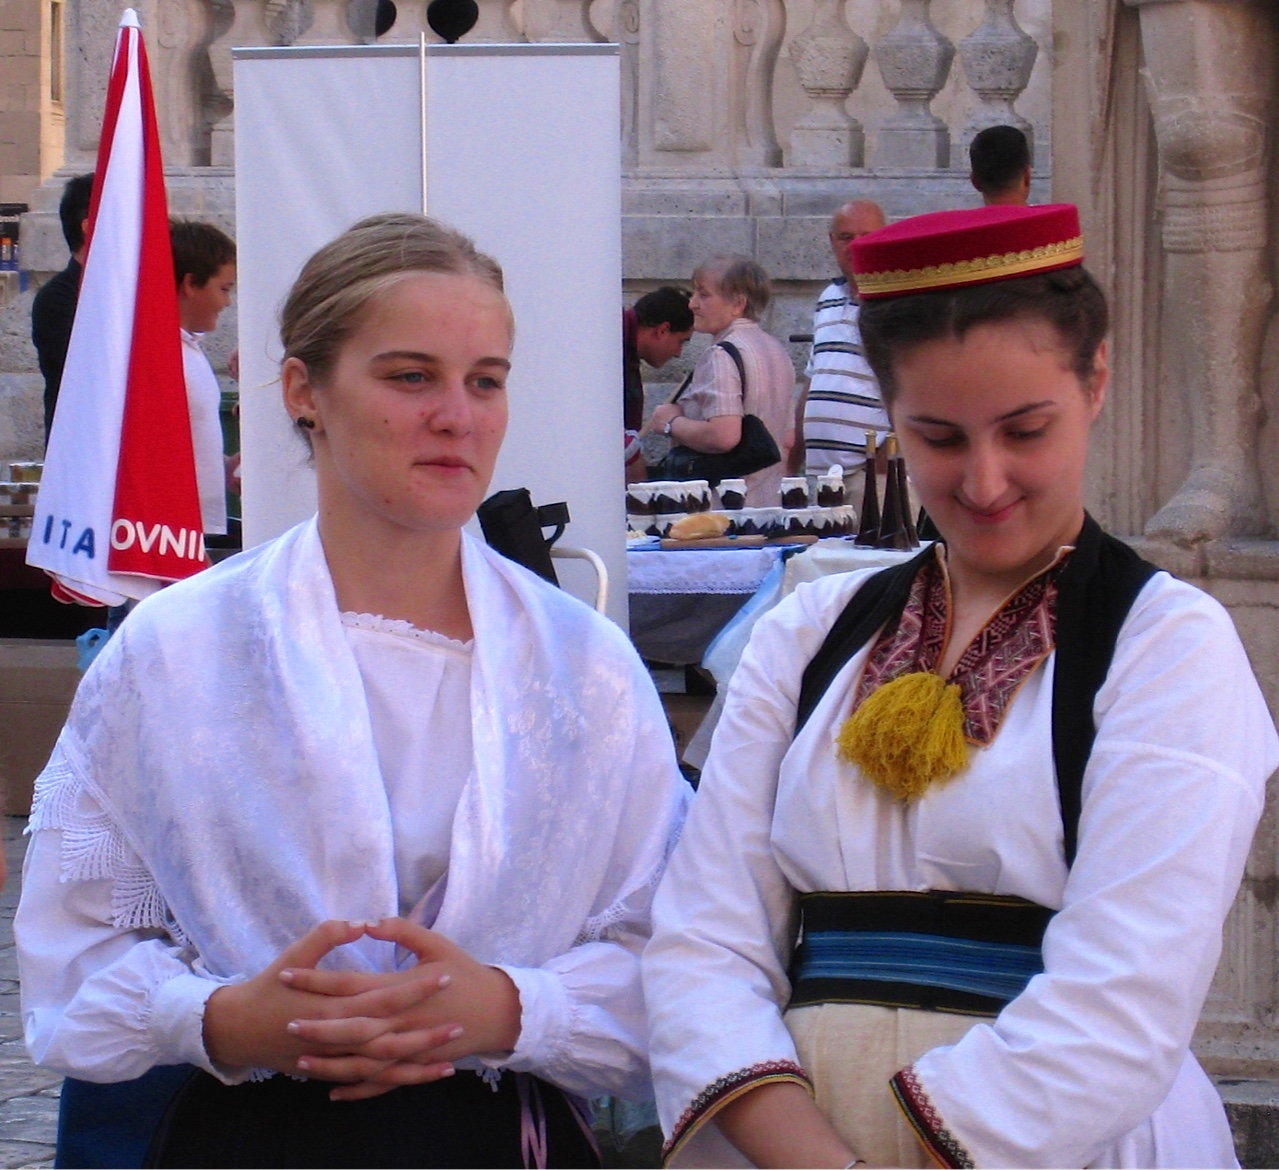 Women at Dubrovnik jam festival